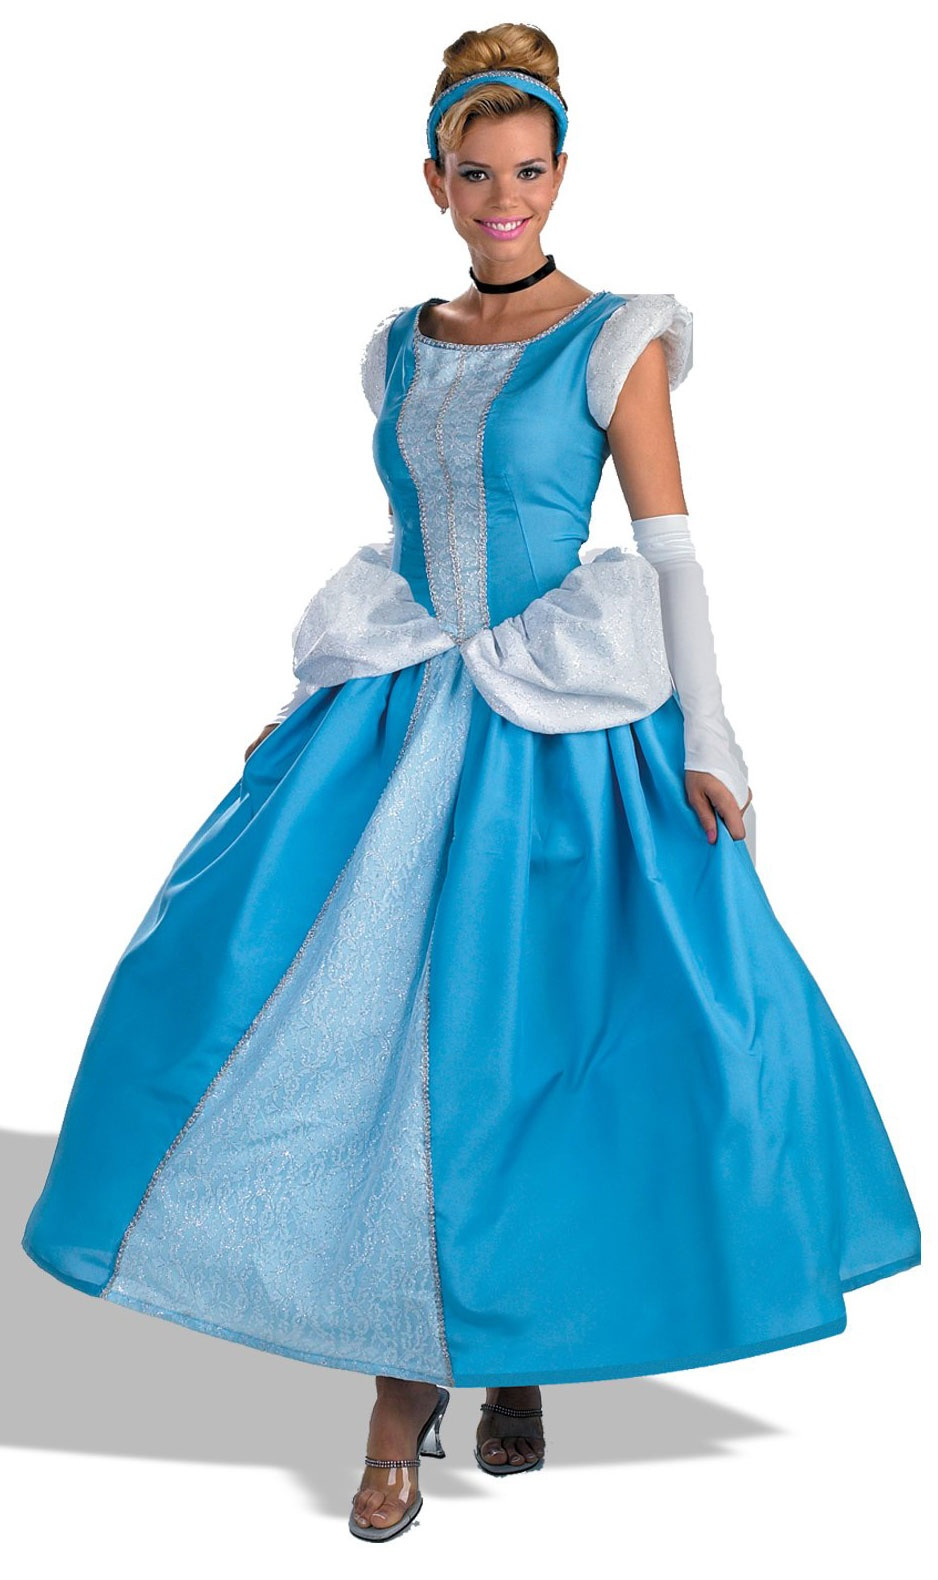 Adult Disney Prestige Princess Cinderella Costume. Adult Cinderella Costumes